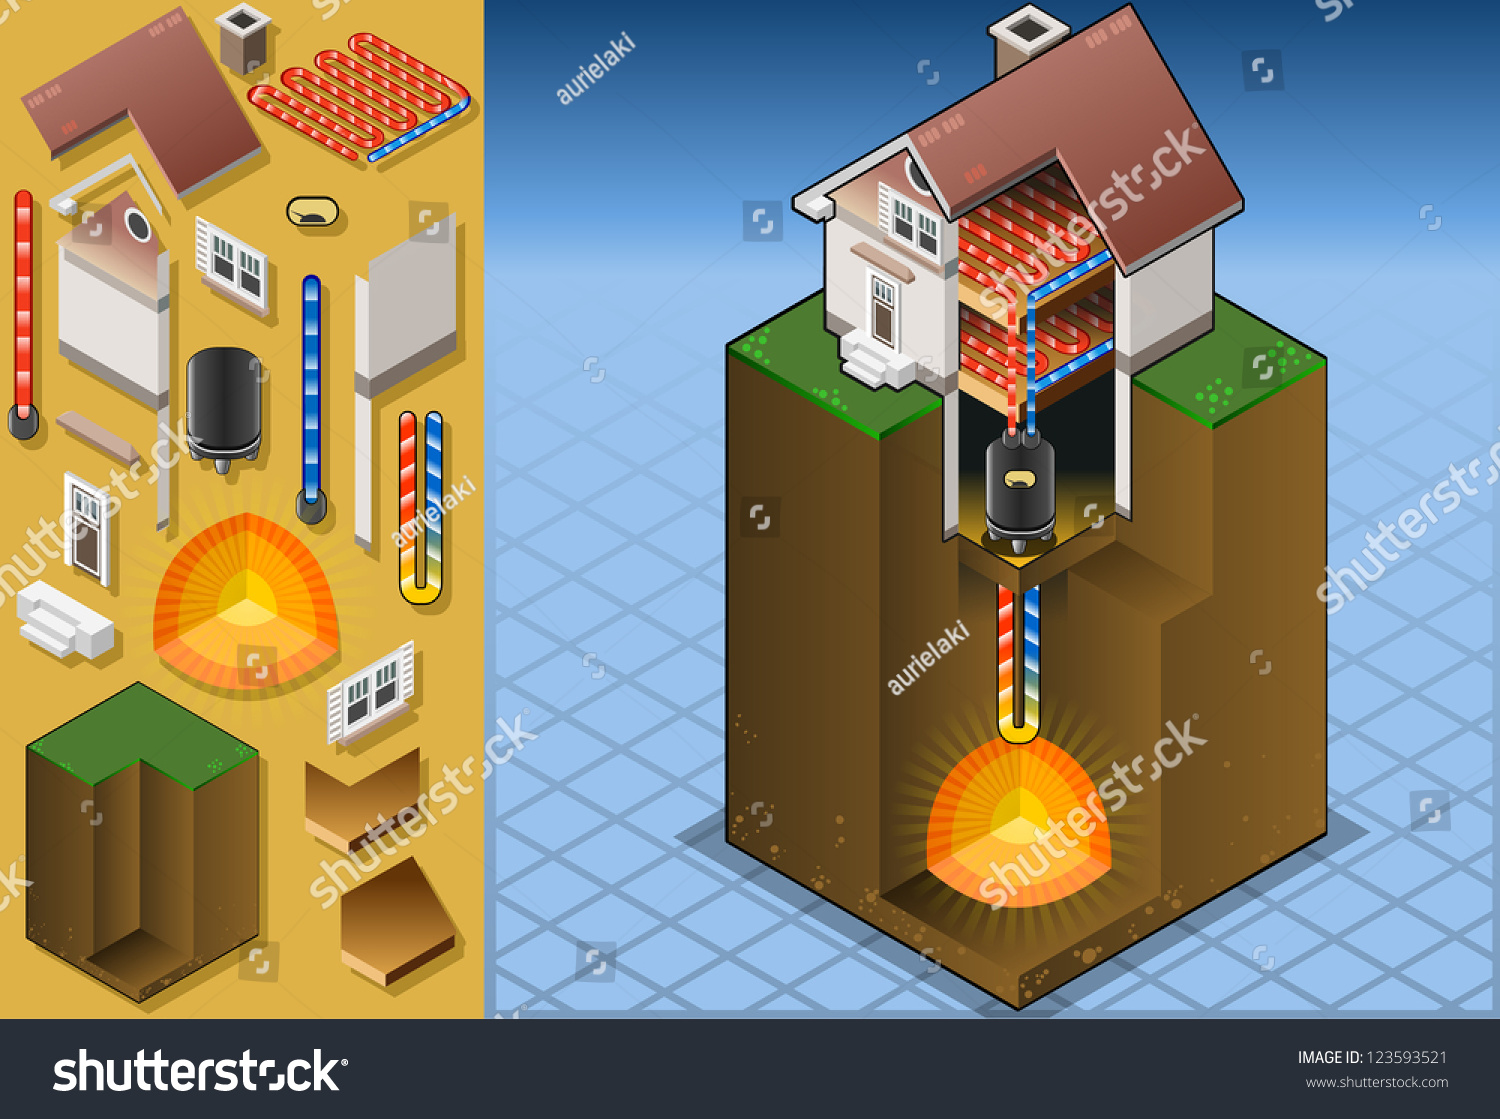 Geothermal earth energy heat pump diagram stock illustration geothermal earth energy heat pump diagram 3d isometric infographic of geothermal energies chain harvesting and pooptronica